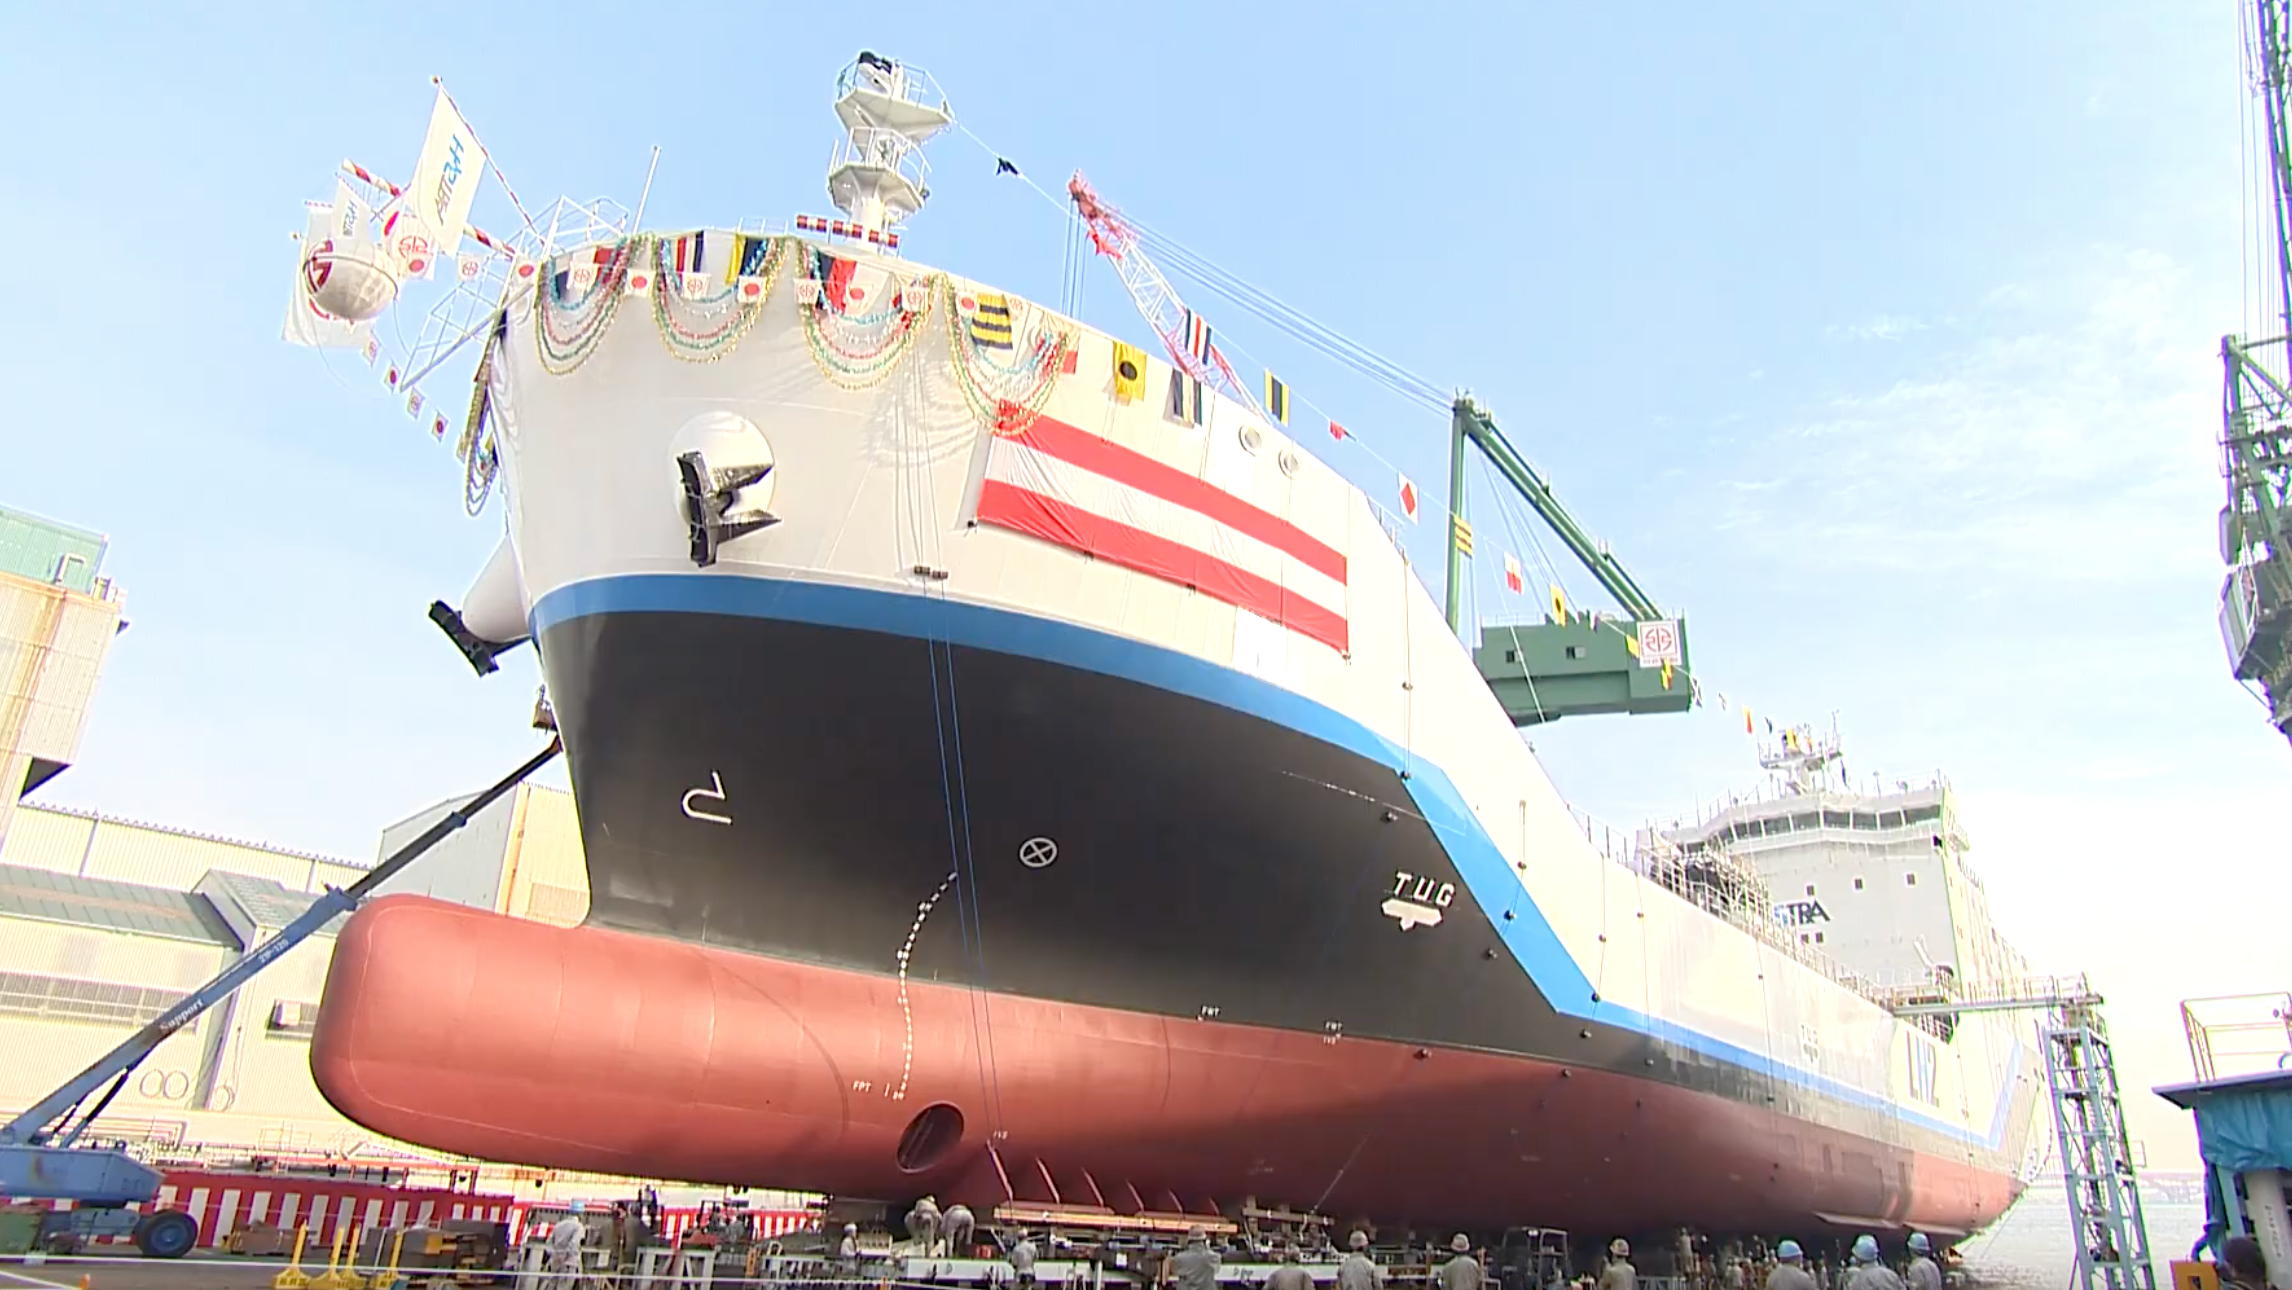 Kawasaki Launches The World's First Liquefied Hydrogen Carrier Ship